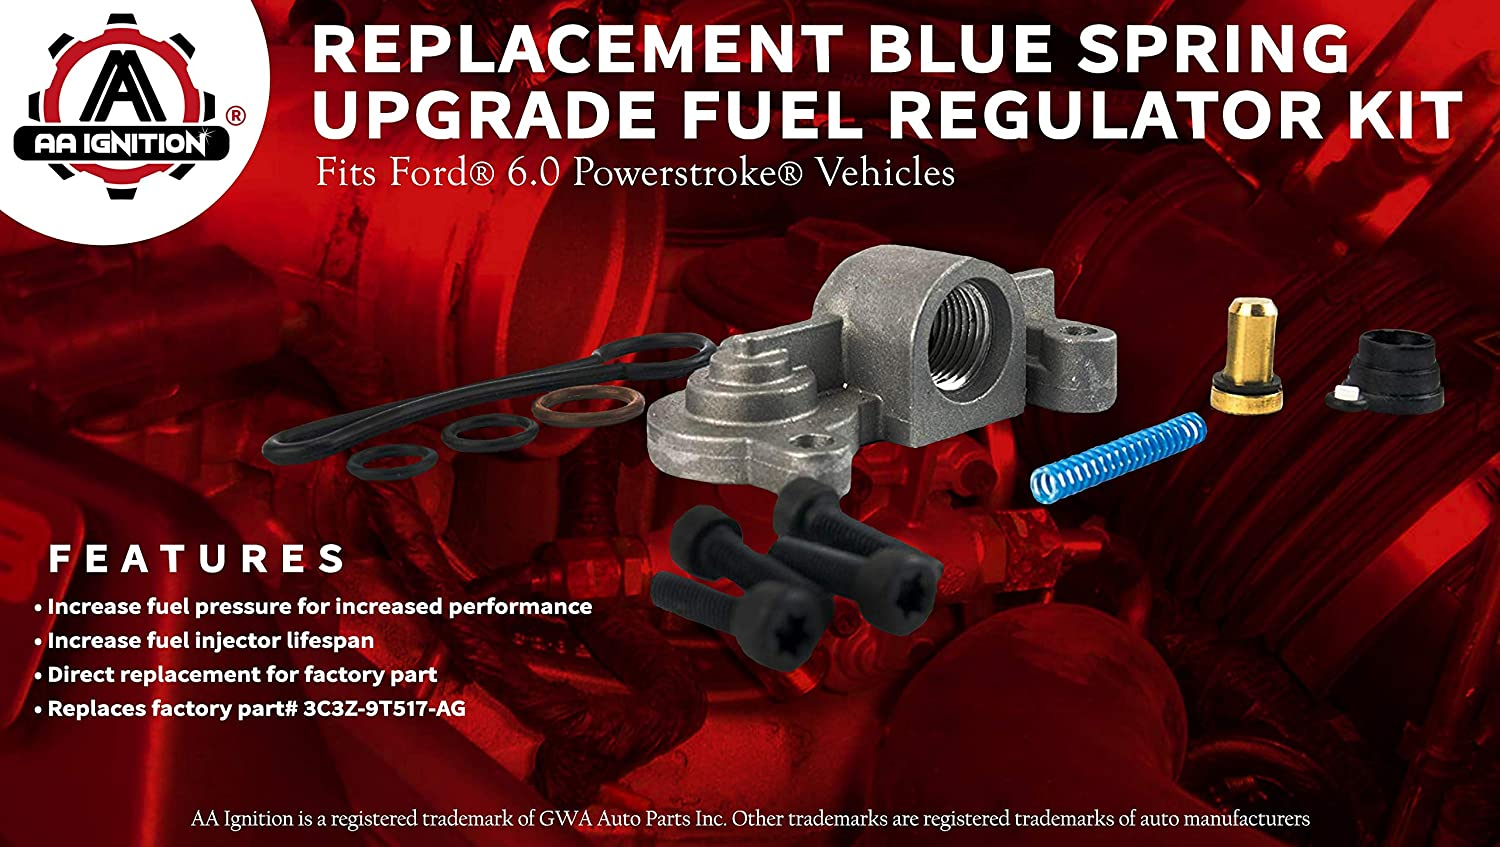 60 Blue Spring Kit Upgrade Fuel Regulator Fits 2006 Ford F 250 Filter Location Powerstroke F250 F350 F450 F550 2003 2004 2005